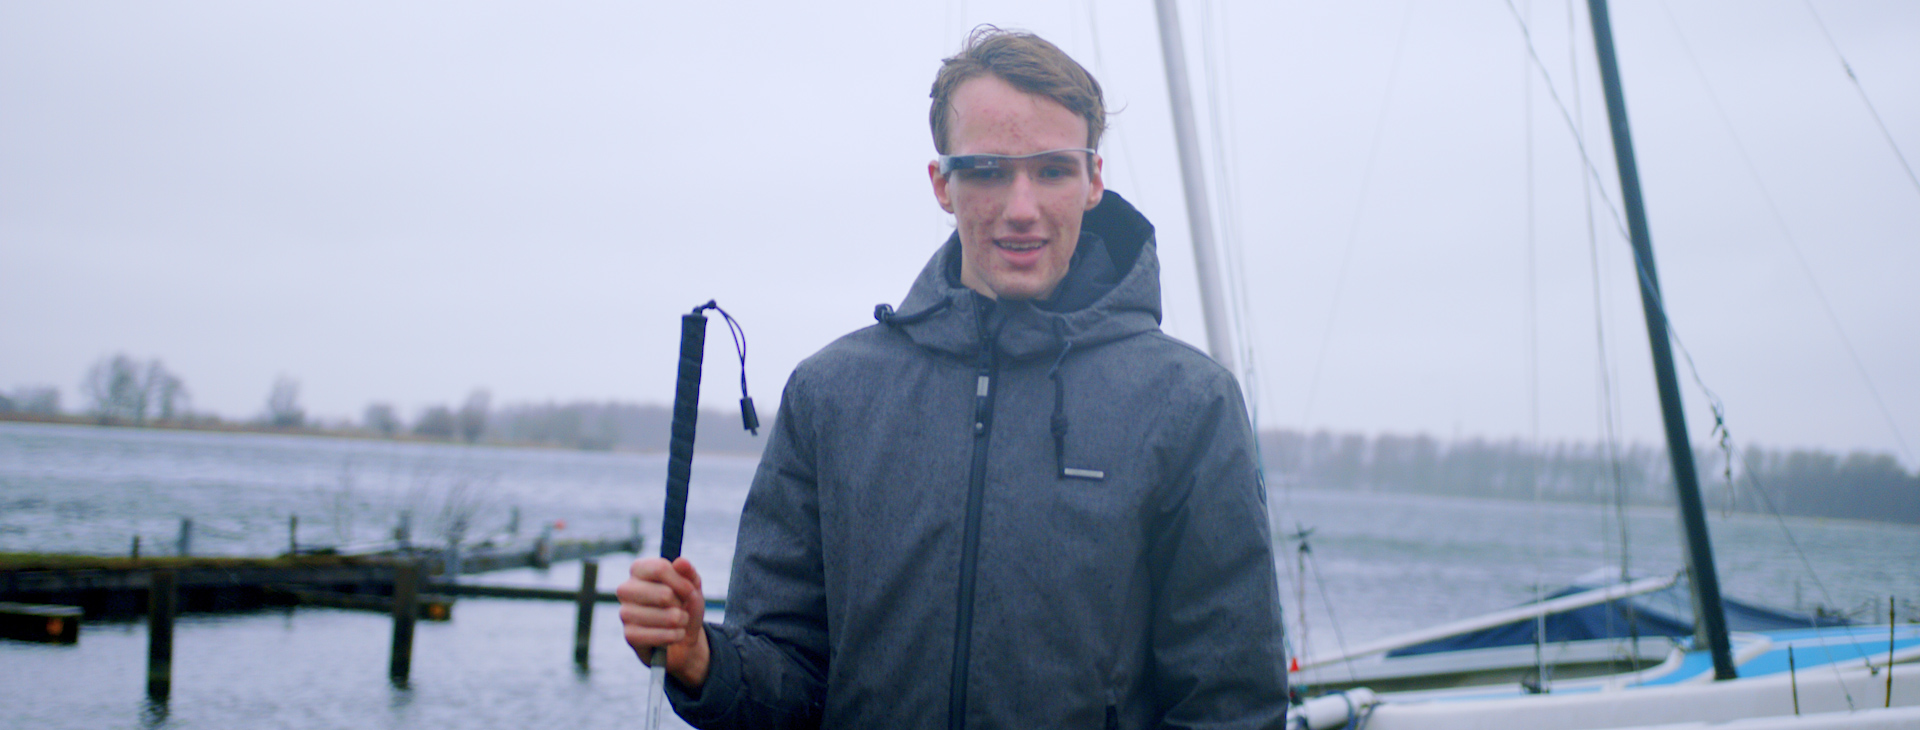 A user wearing the Envision Glasses